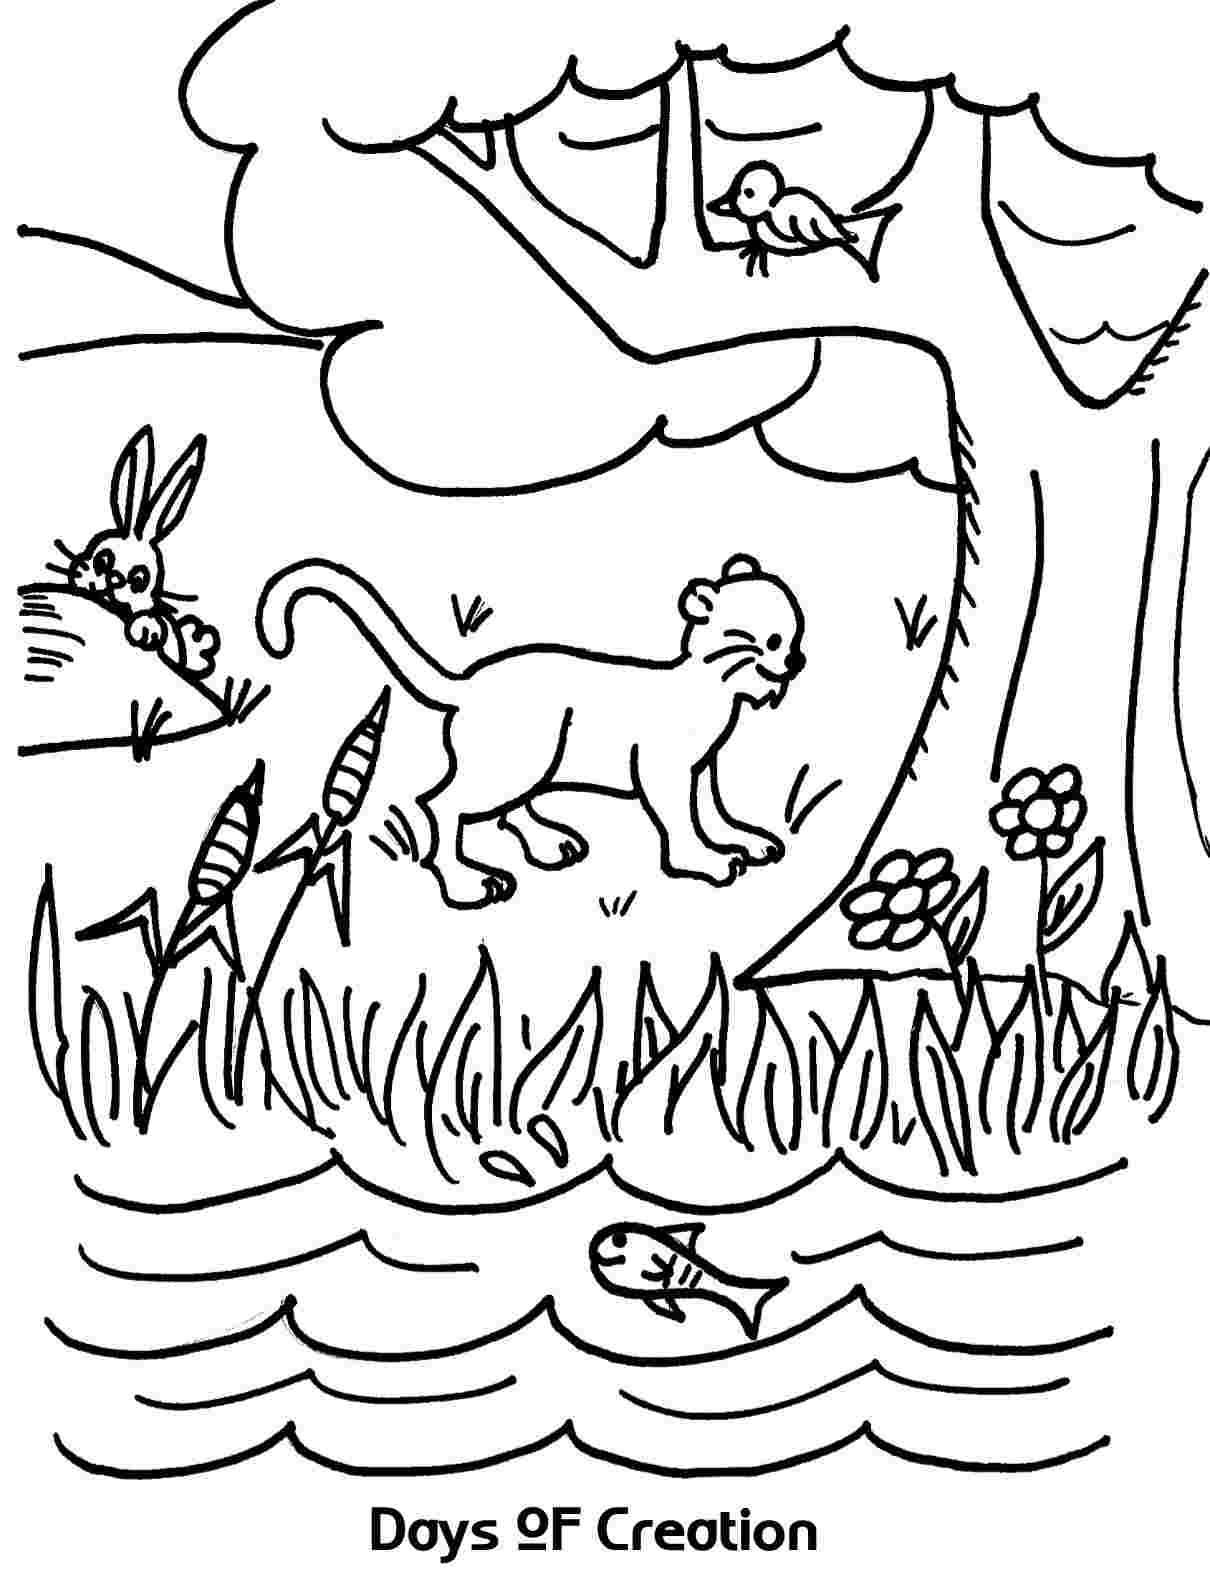 coloring sheet 6 days of creation drawing number clipart black and white creation google search 6 days drawing coloring sheet of creation